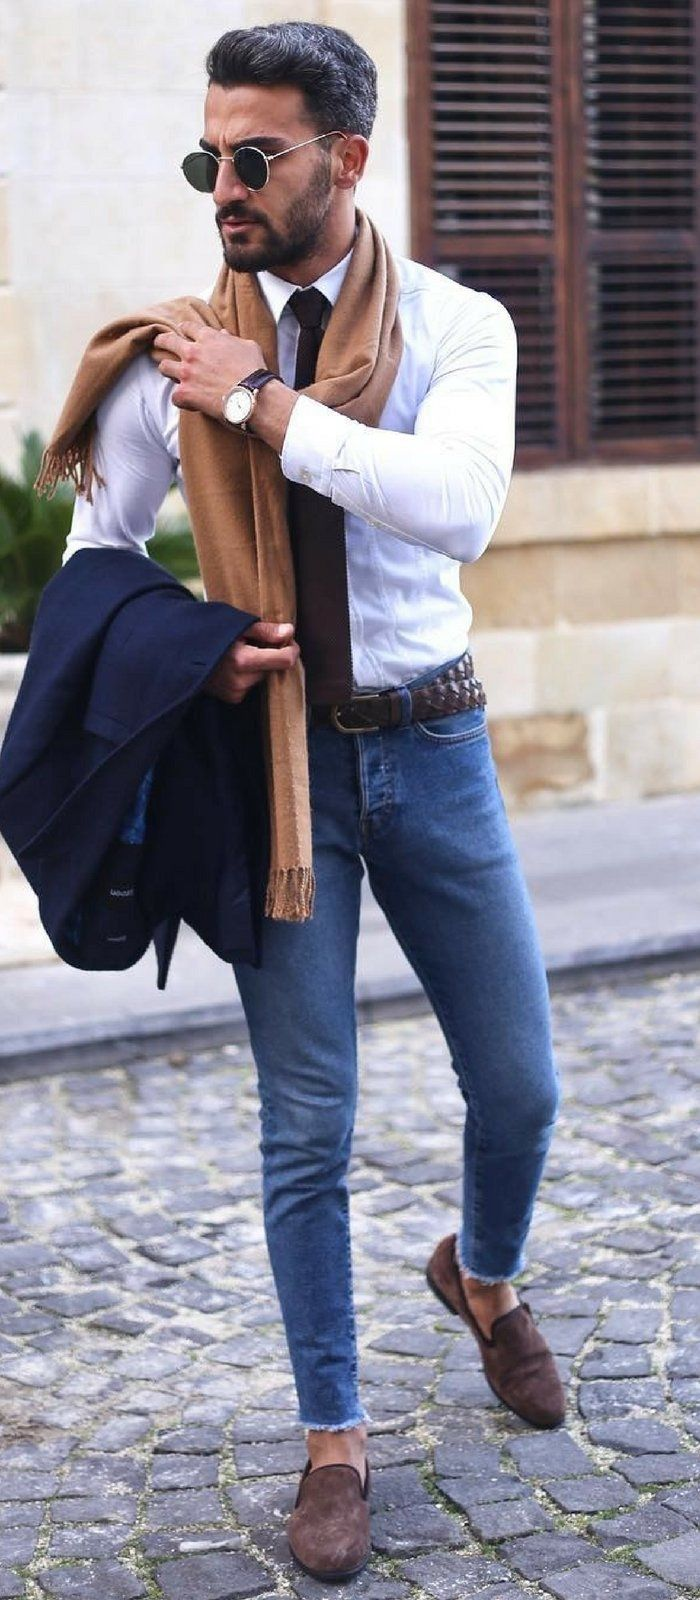 11 Smart Edgy Outfit Ideas For Men Men S Fashion Blog Ps